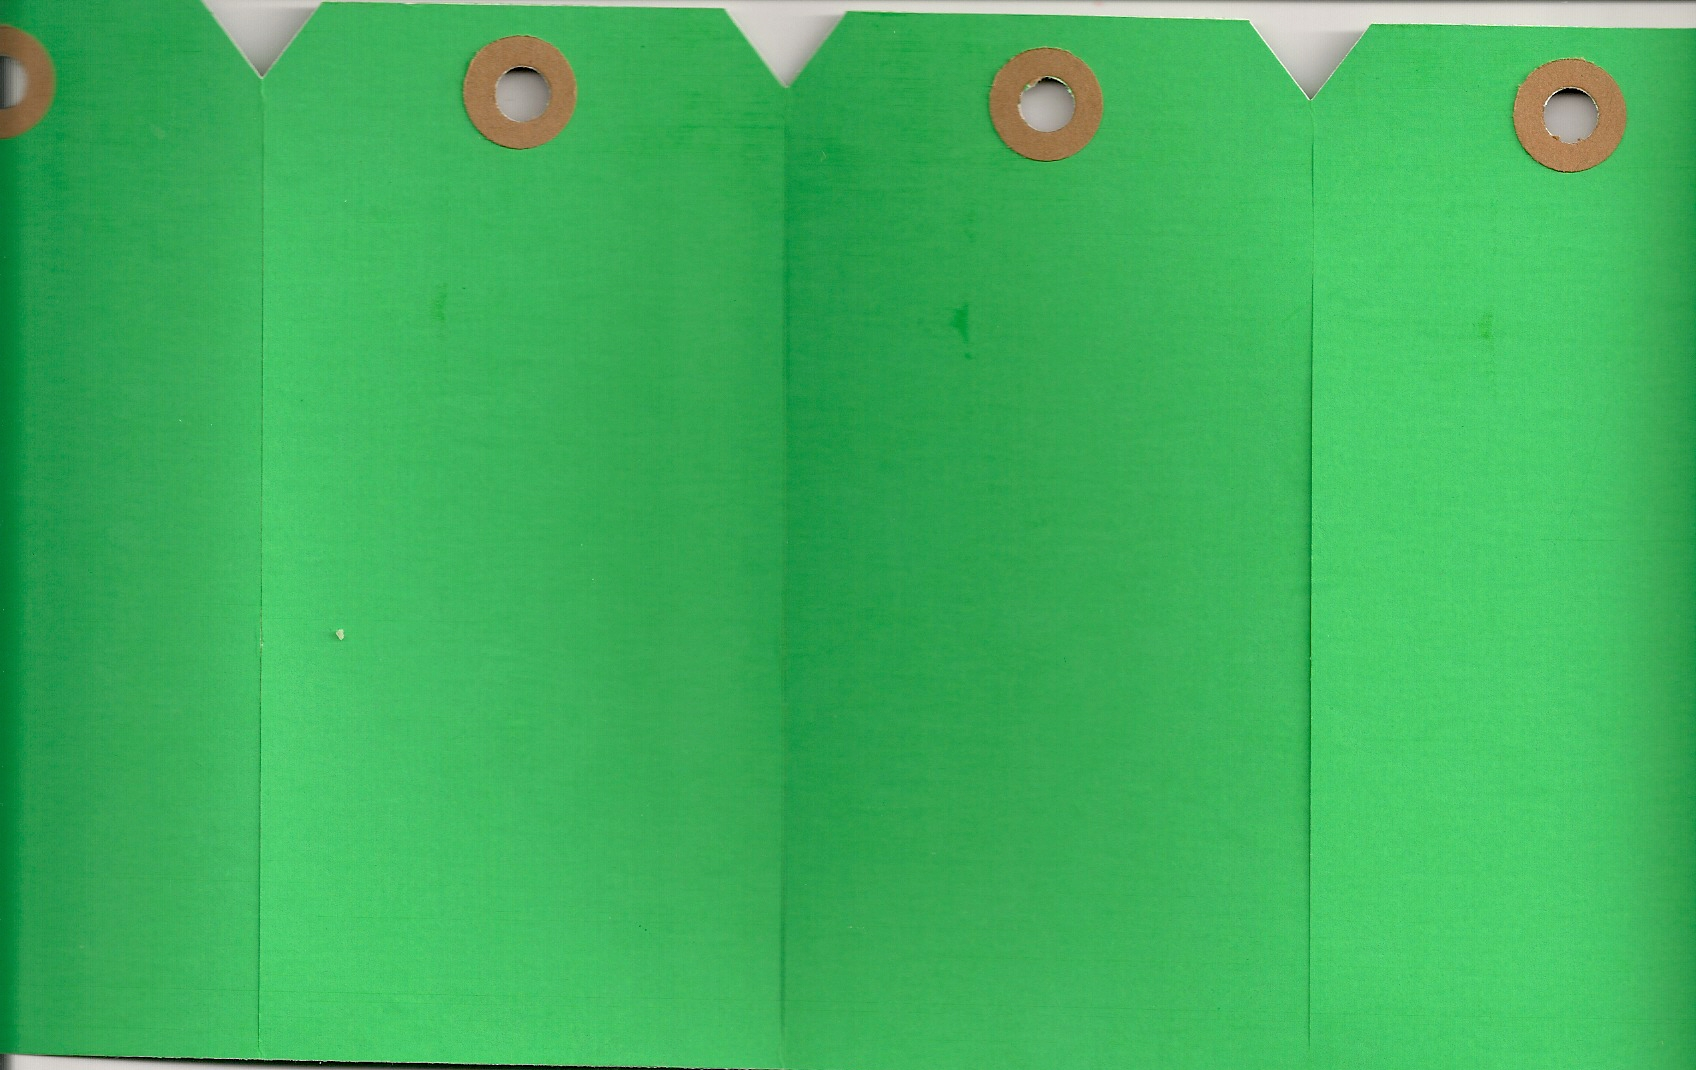 #4 13 POINT GREEN GANGS OF 4 TAGS (250 SHEETS)